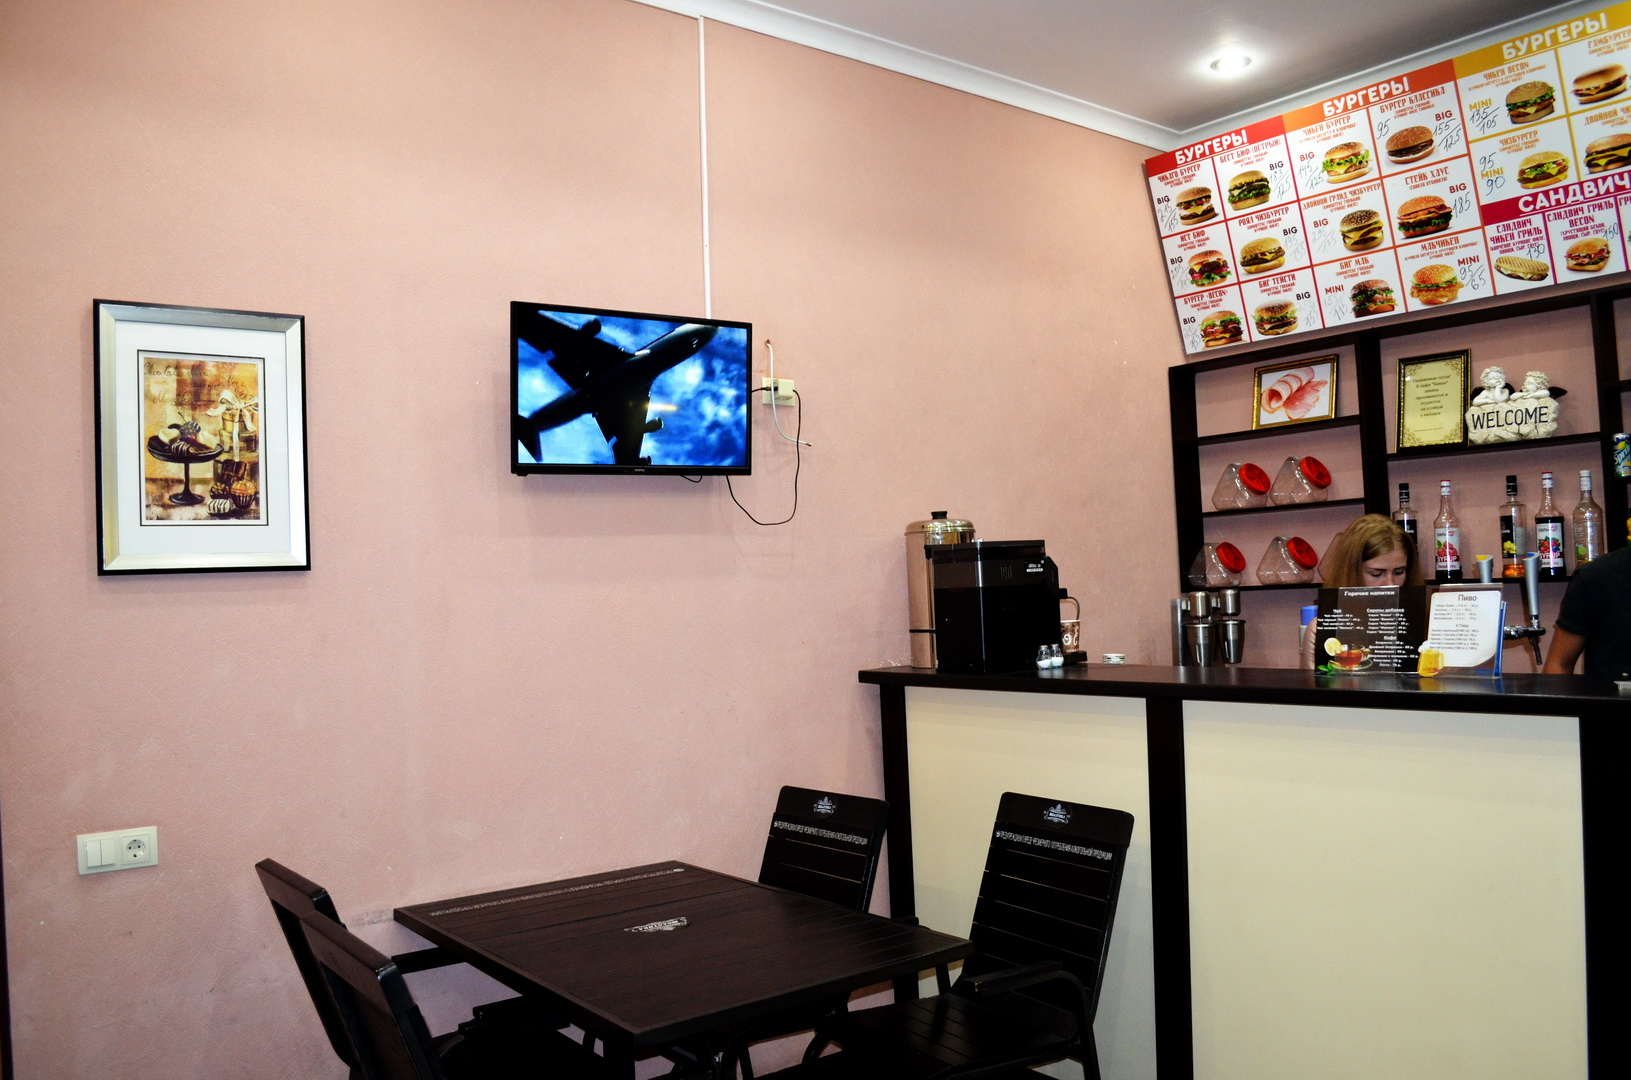 kerch website cafe bacon2